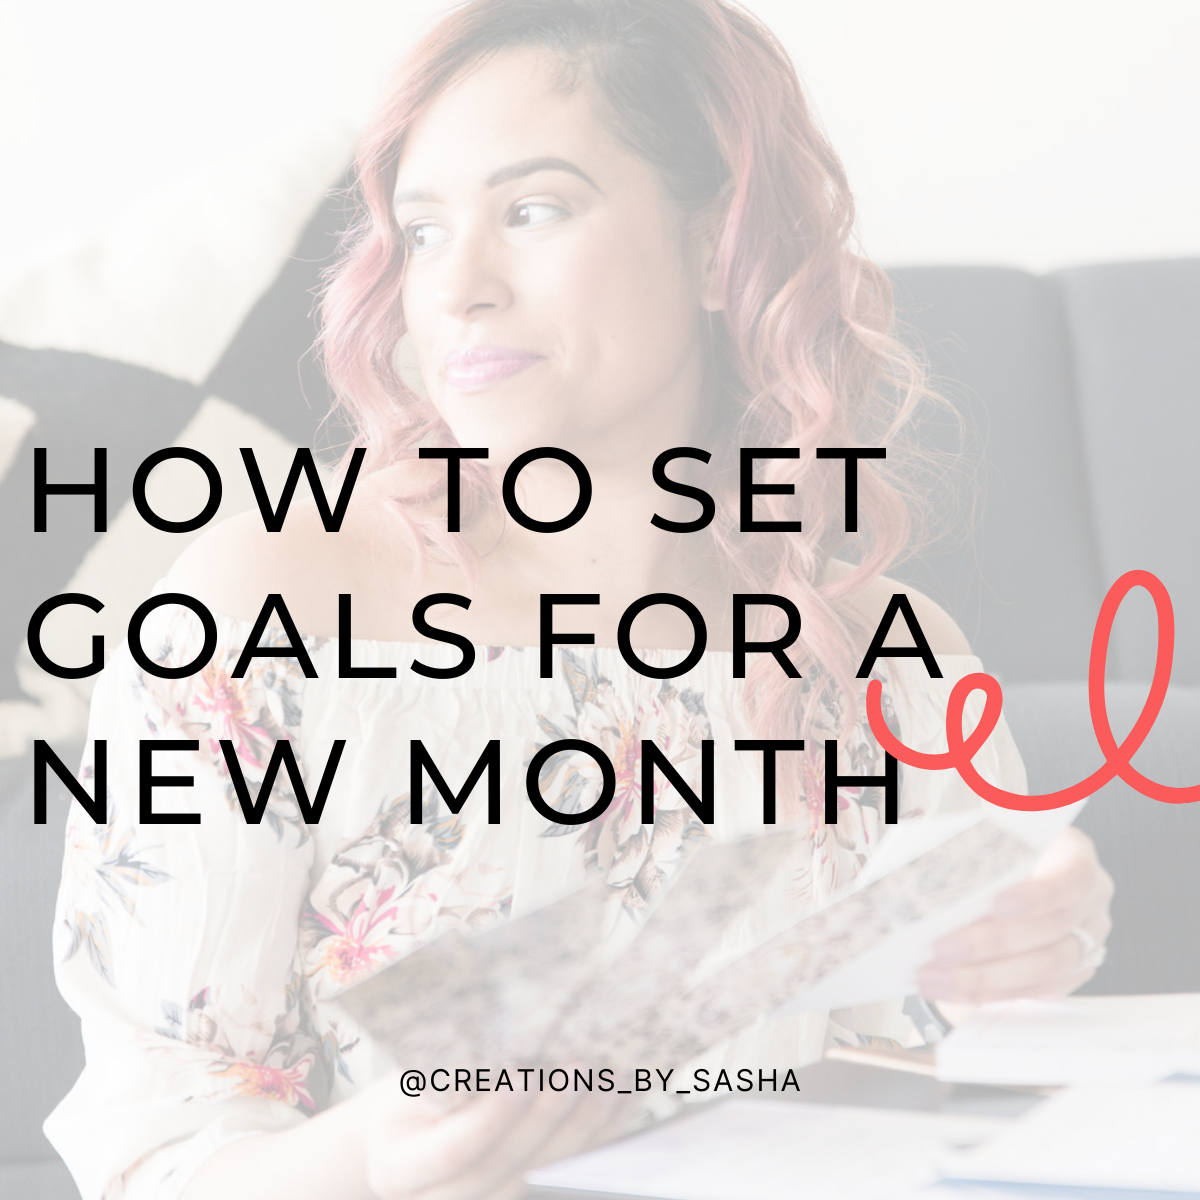 How to Set Goals for a New Month